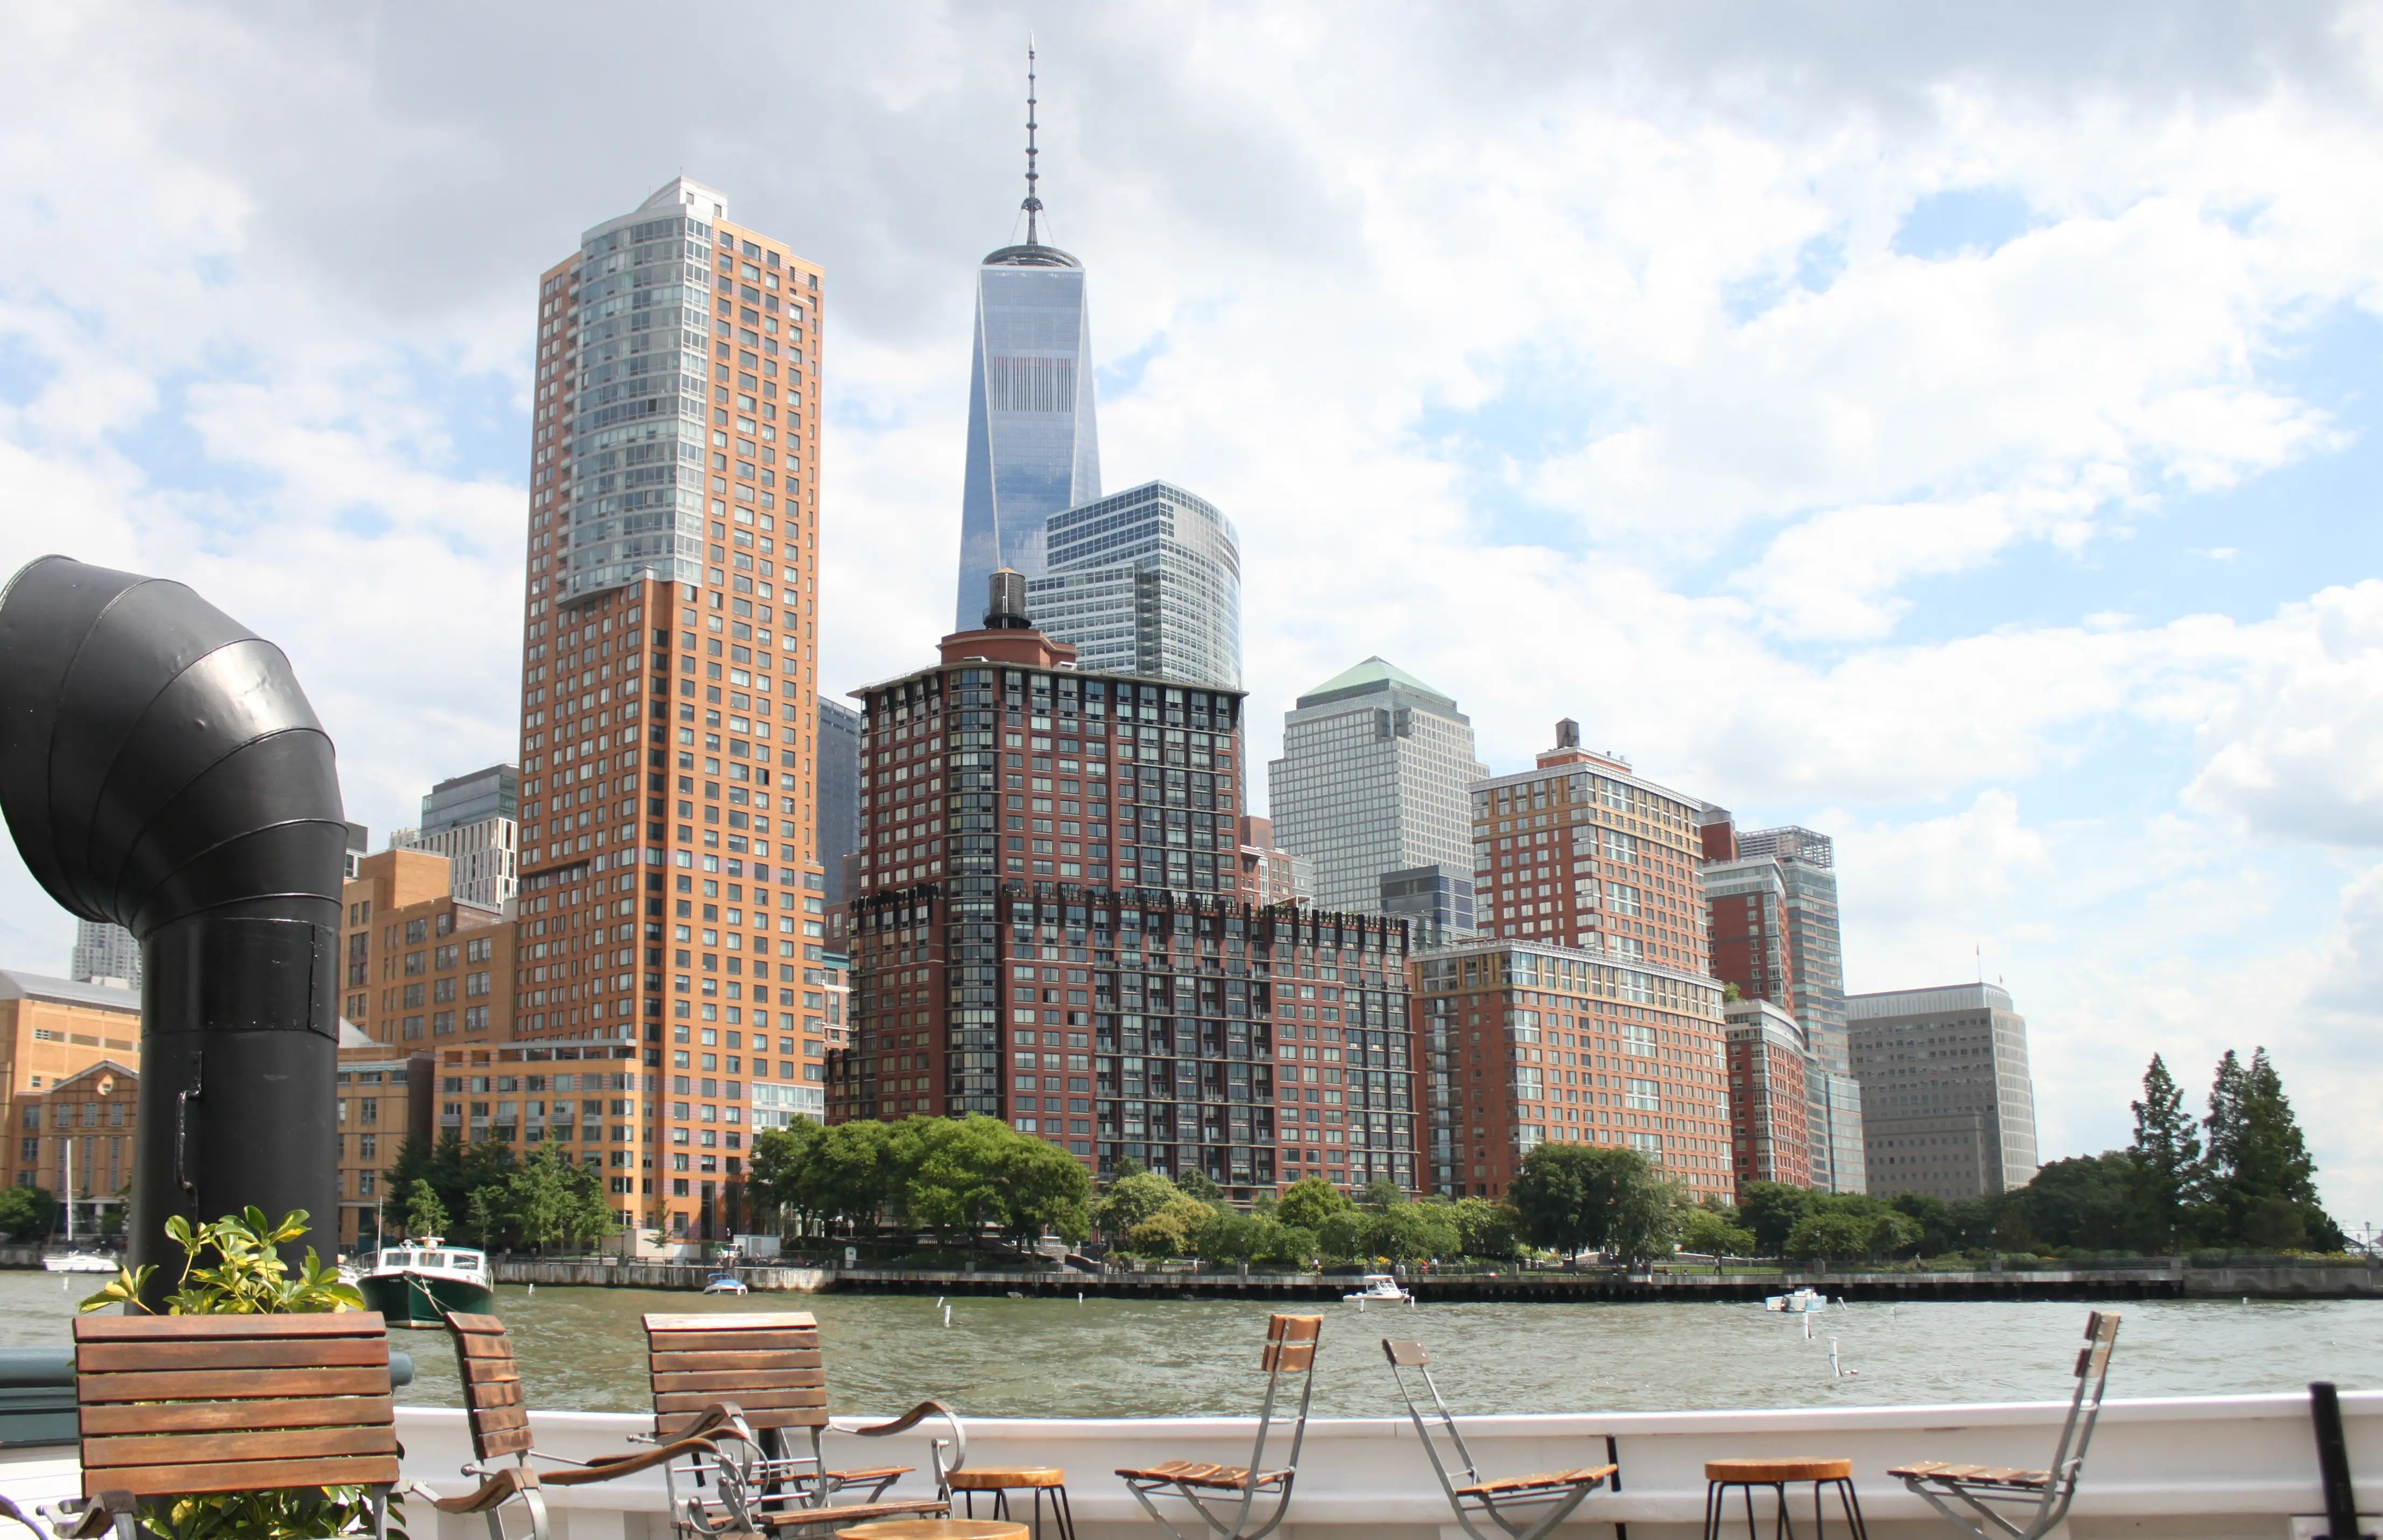 You'll also get a prime view of the Freedom Tower.